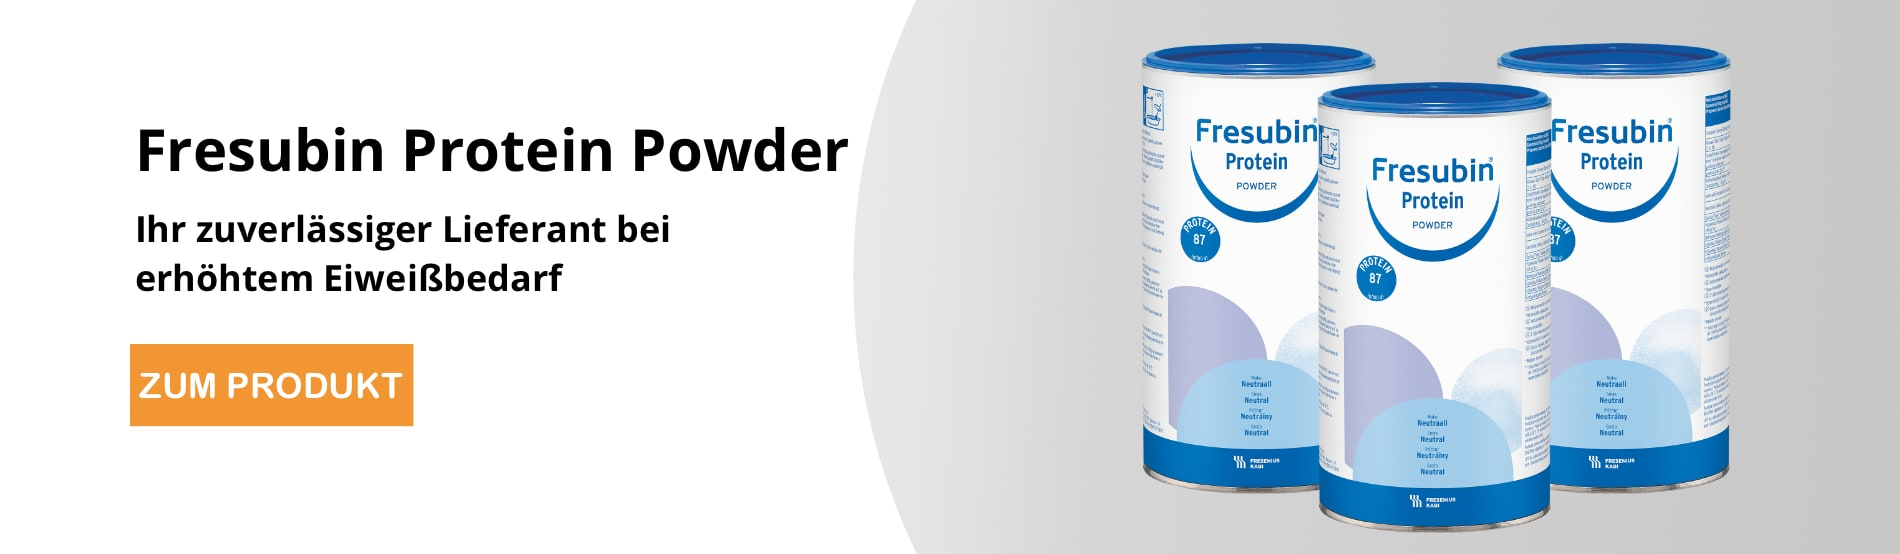 Fresubin Powder